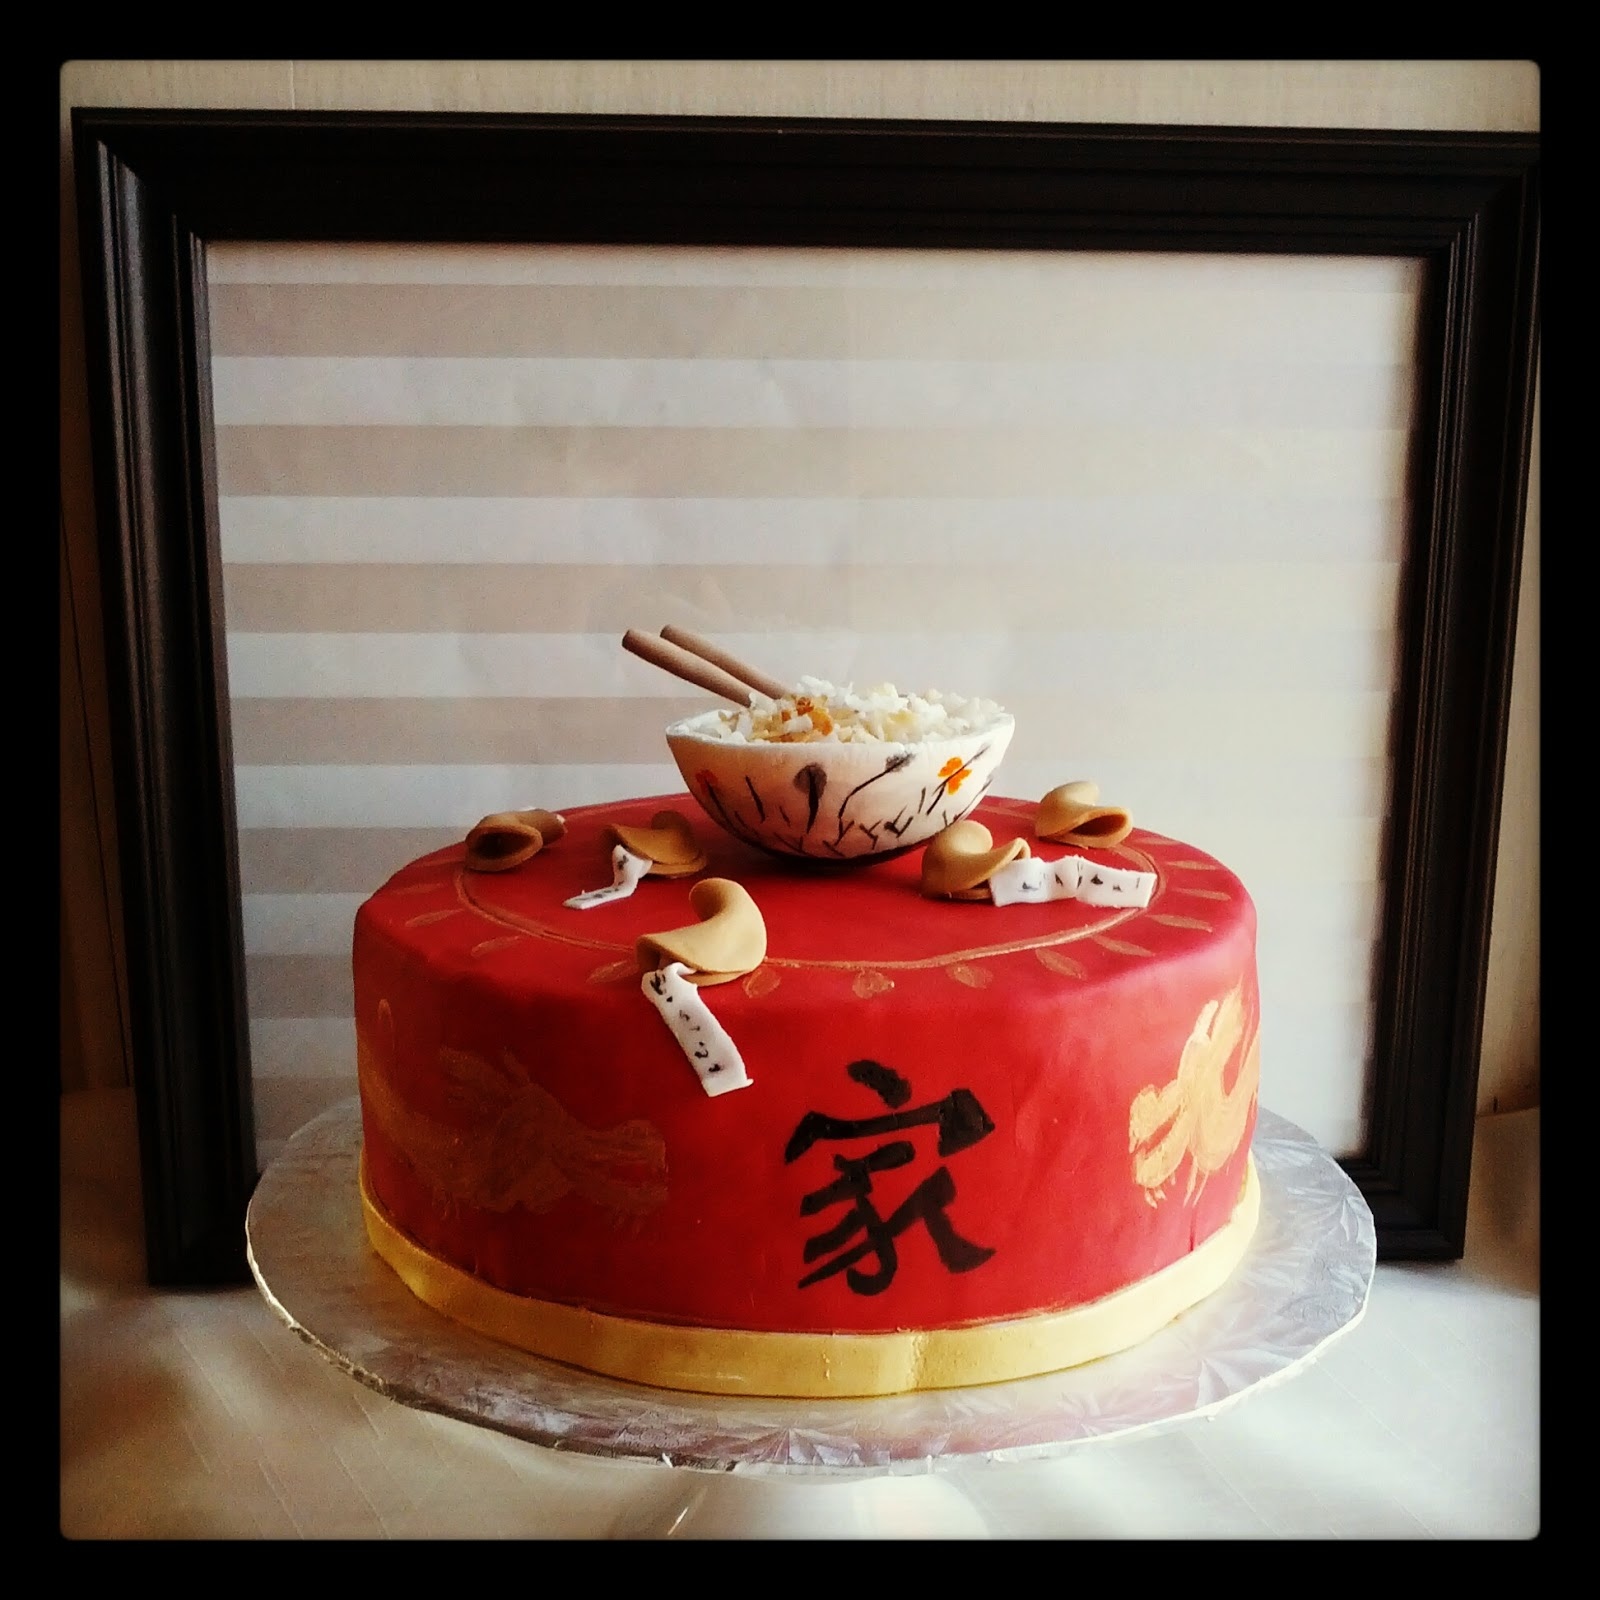 Second Generation Cake Design Chinese Themed Gotcha Day Cake